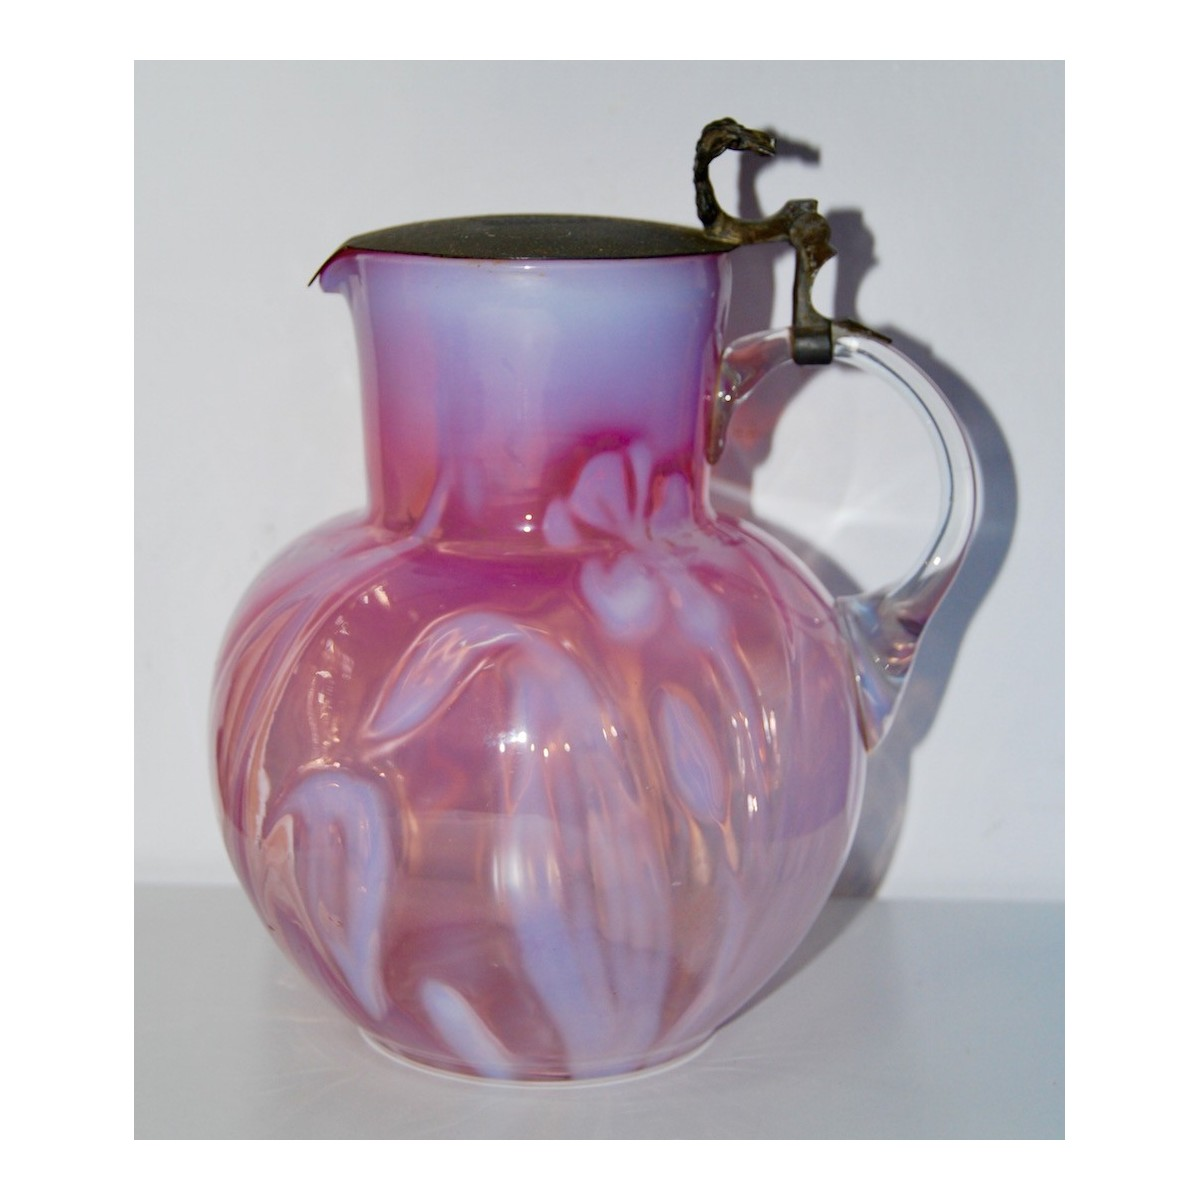 Blown glass jug of the early 20th